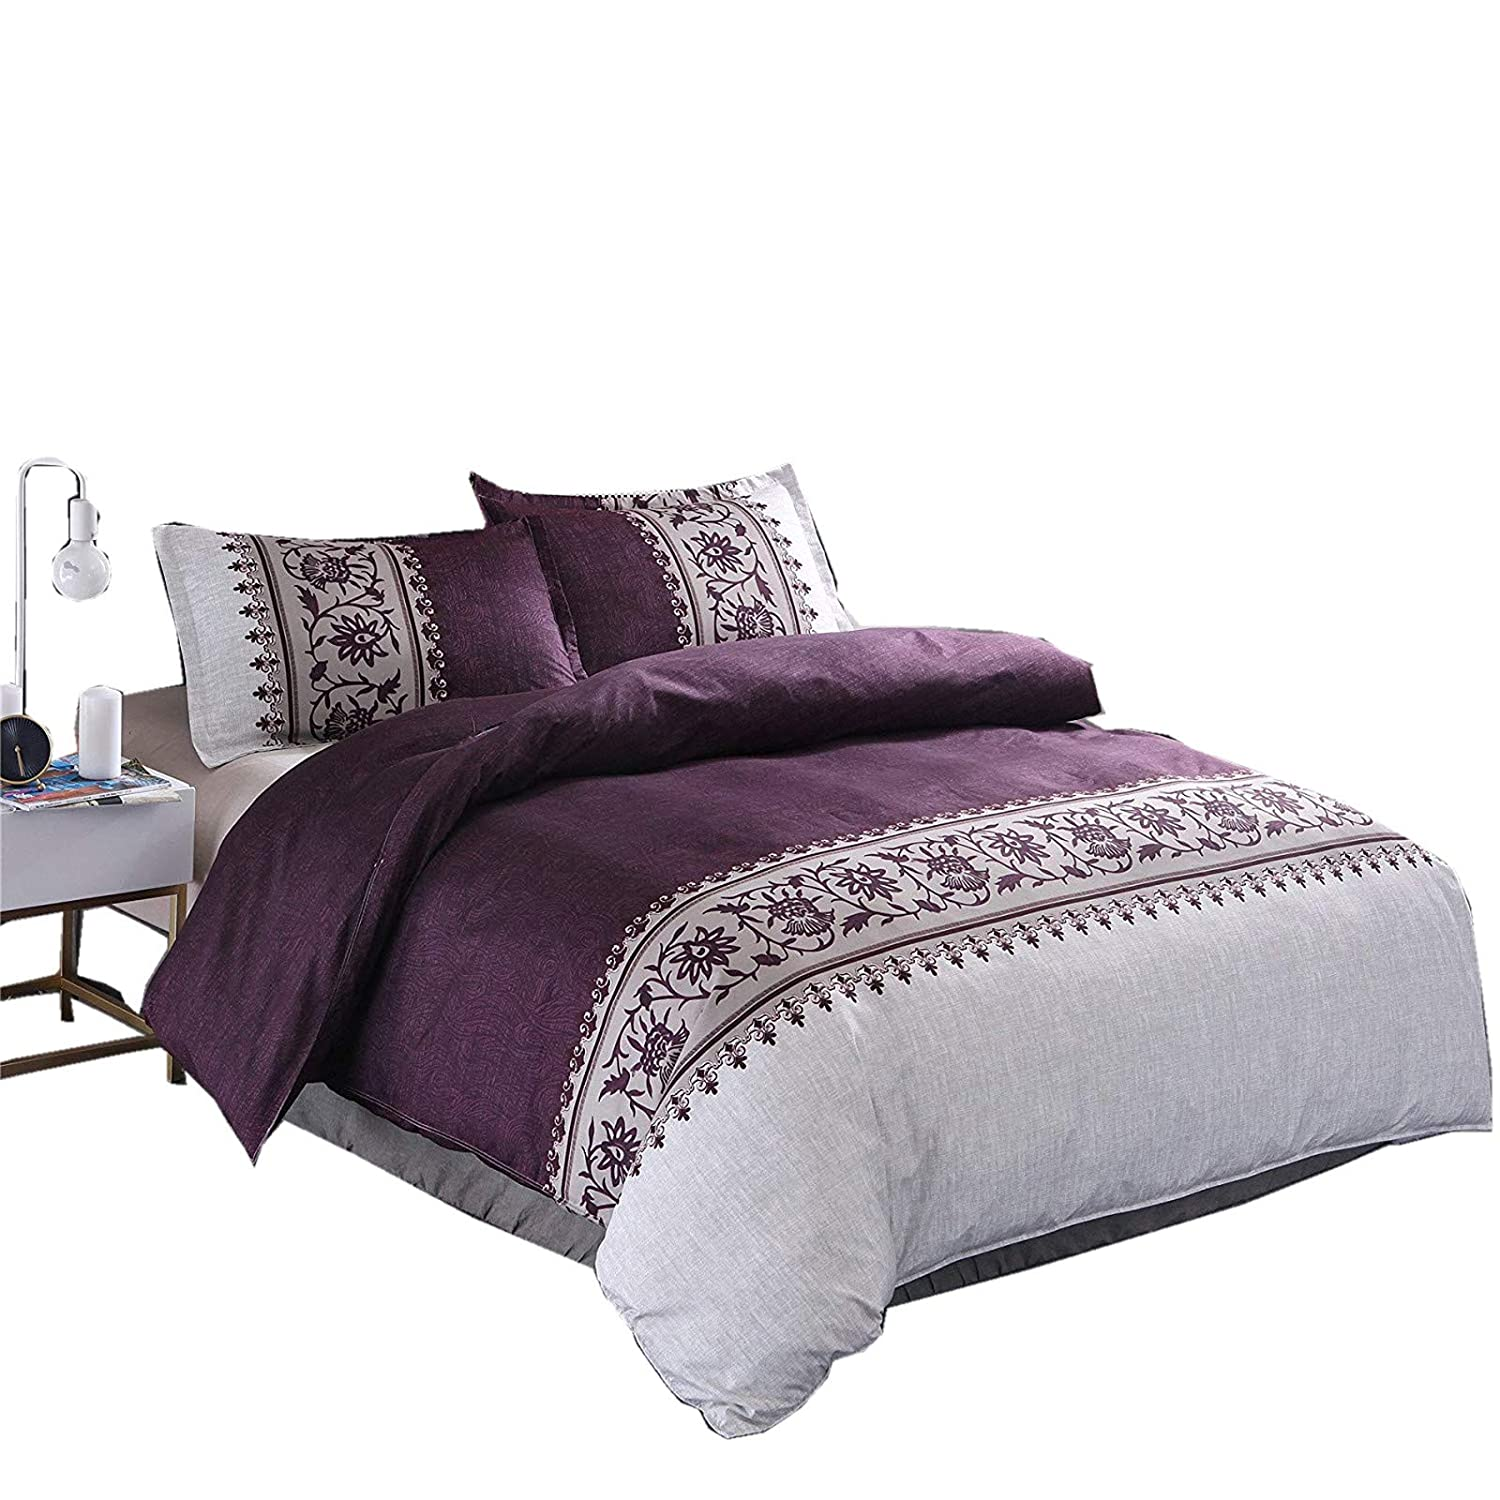 Purple Twin Meeting Story Hotel Luxury Soft Microfiber Convallaria Printed Pattern Reversible Duvet Cover Set Home Kitchen Duvet Cover Sets